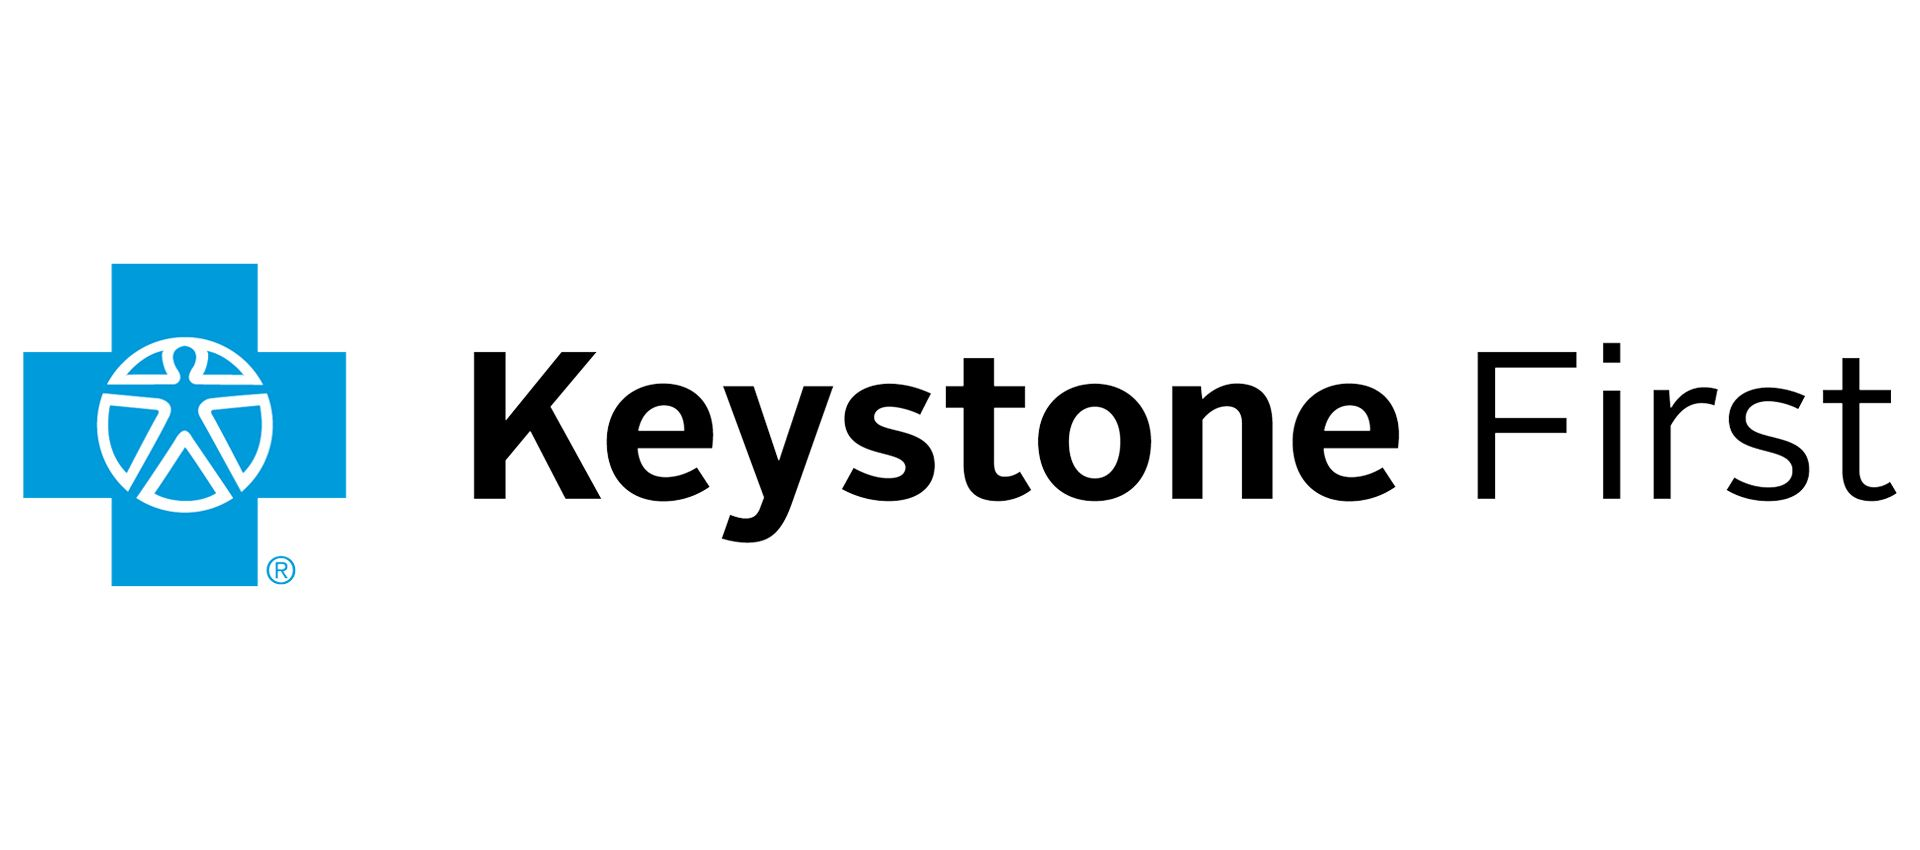 Keystone First - Putting our Community First